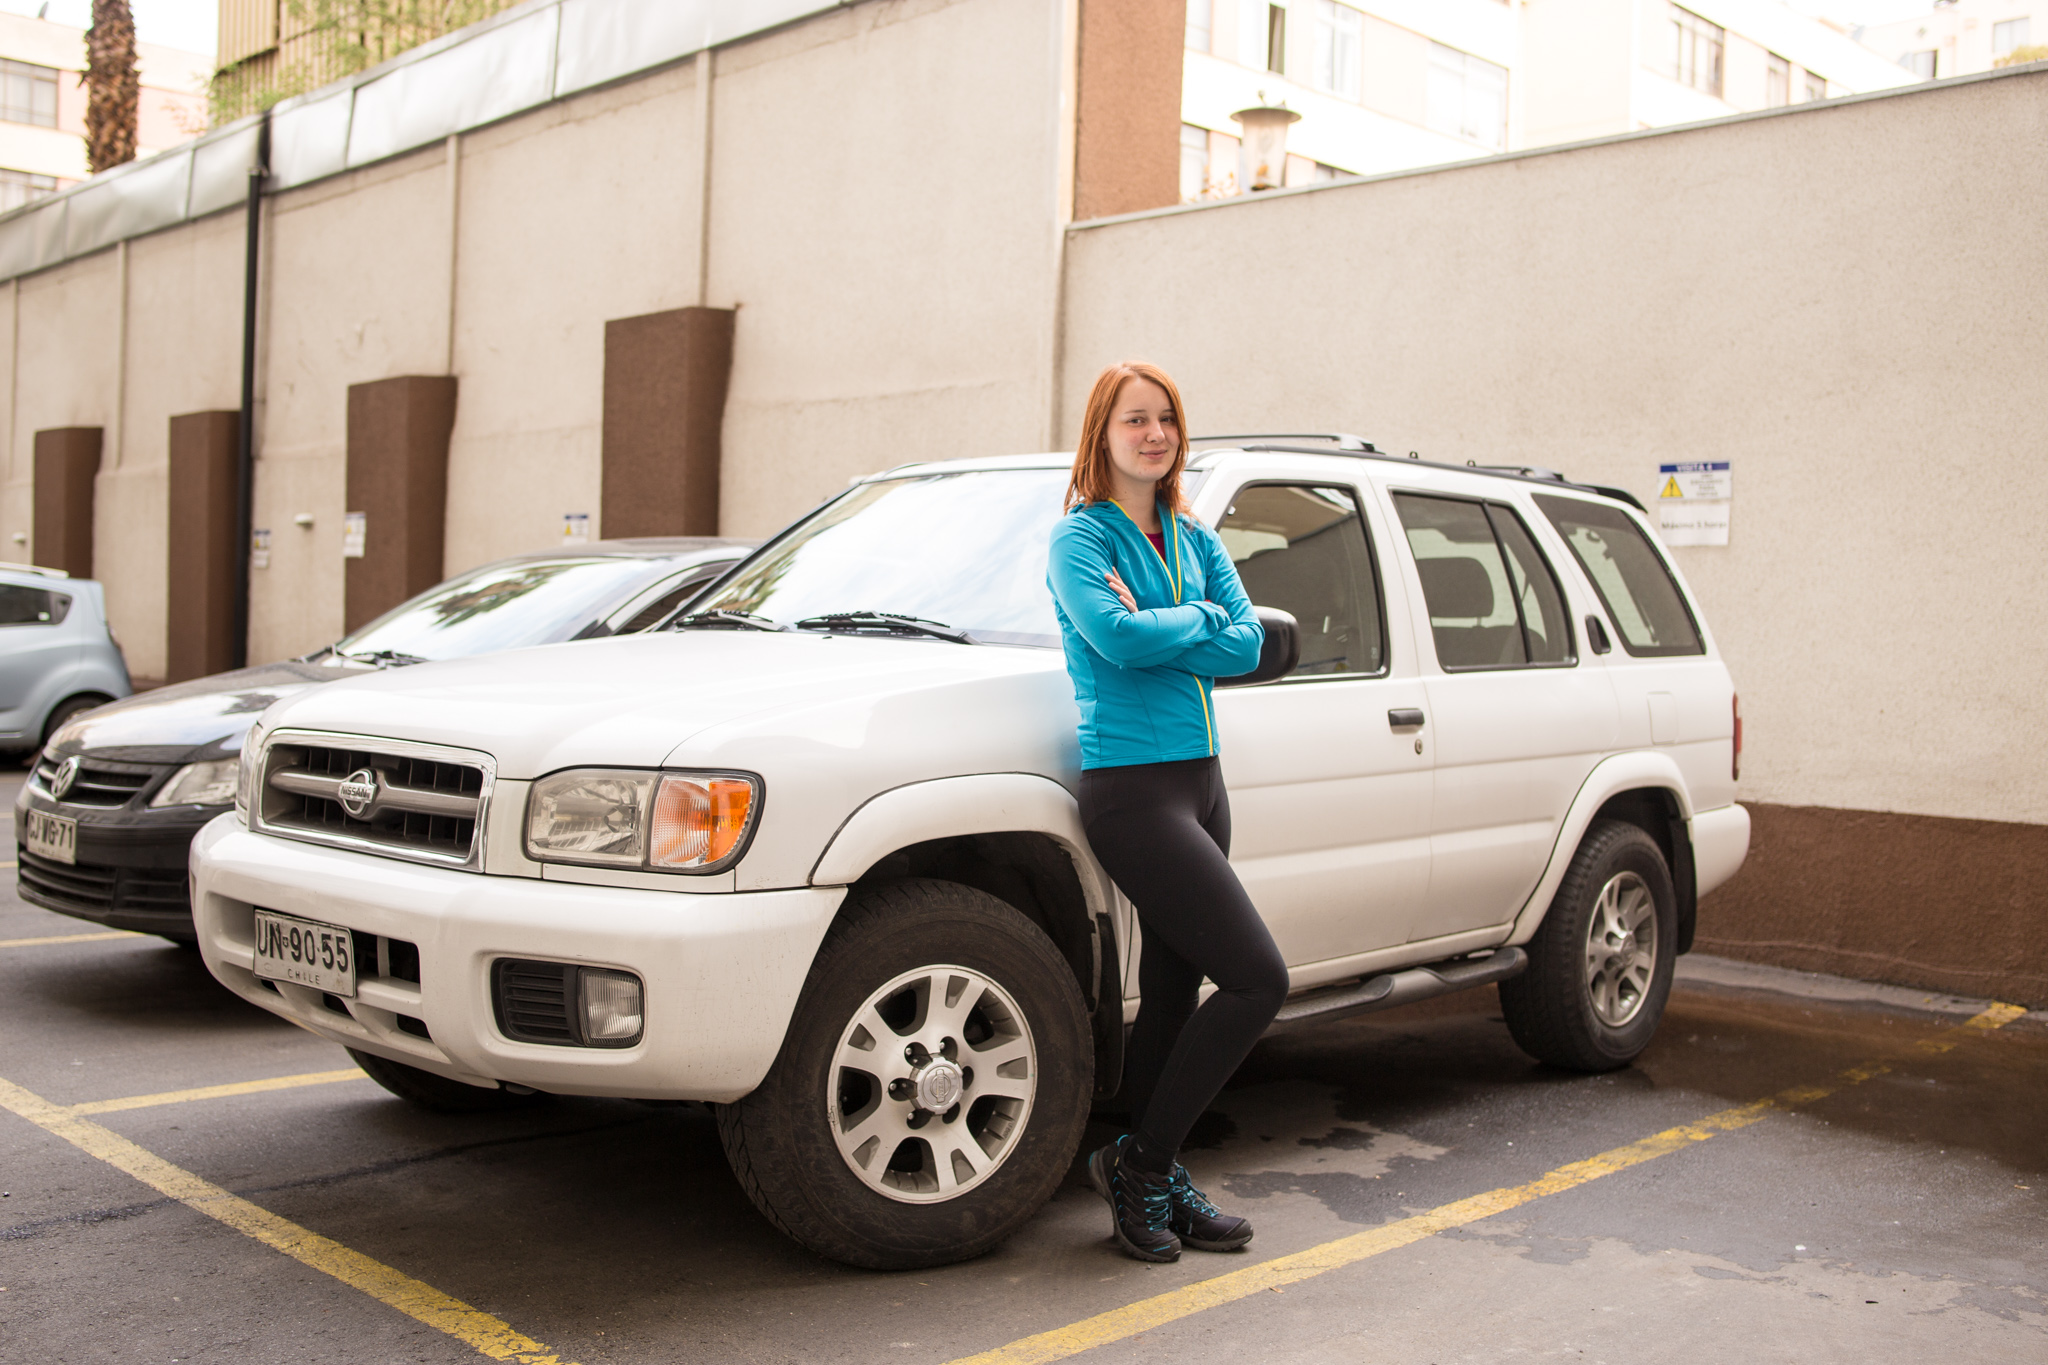 Janka proudly standing next to our sweet ride.Buen viaje! :)